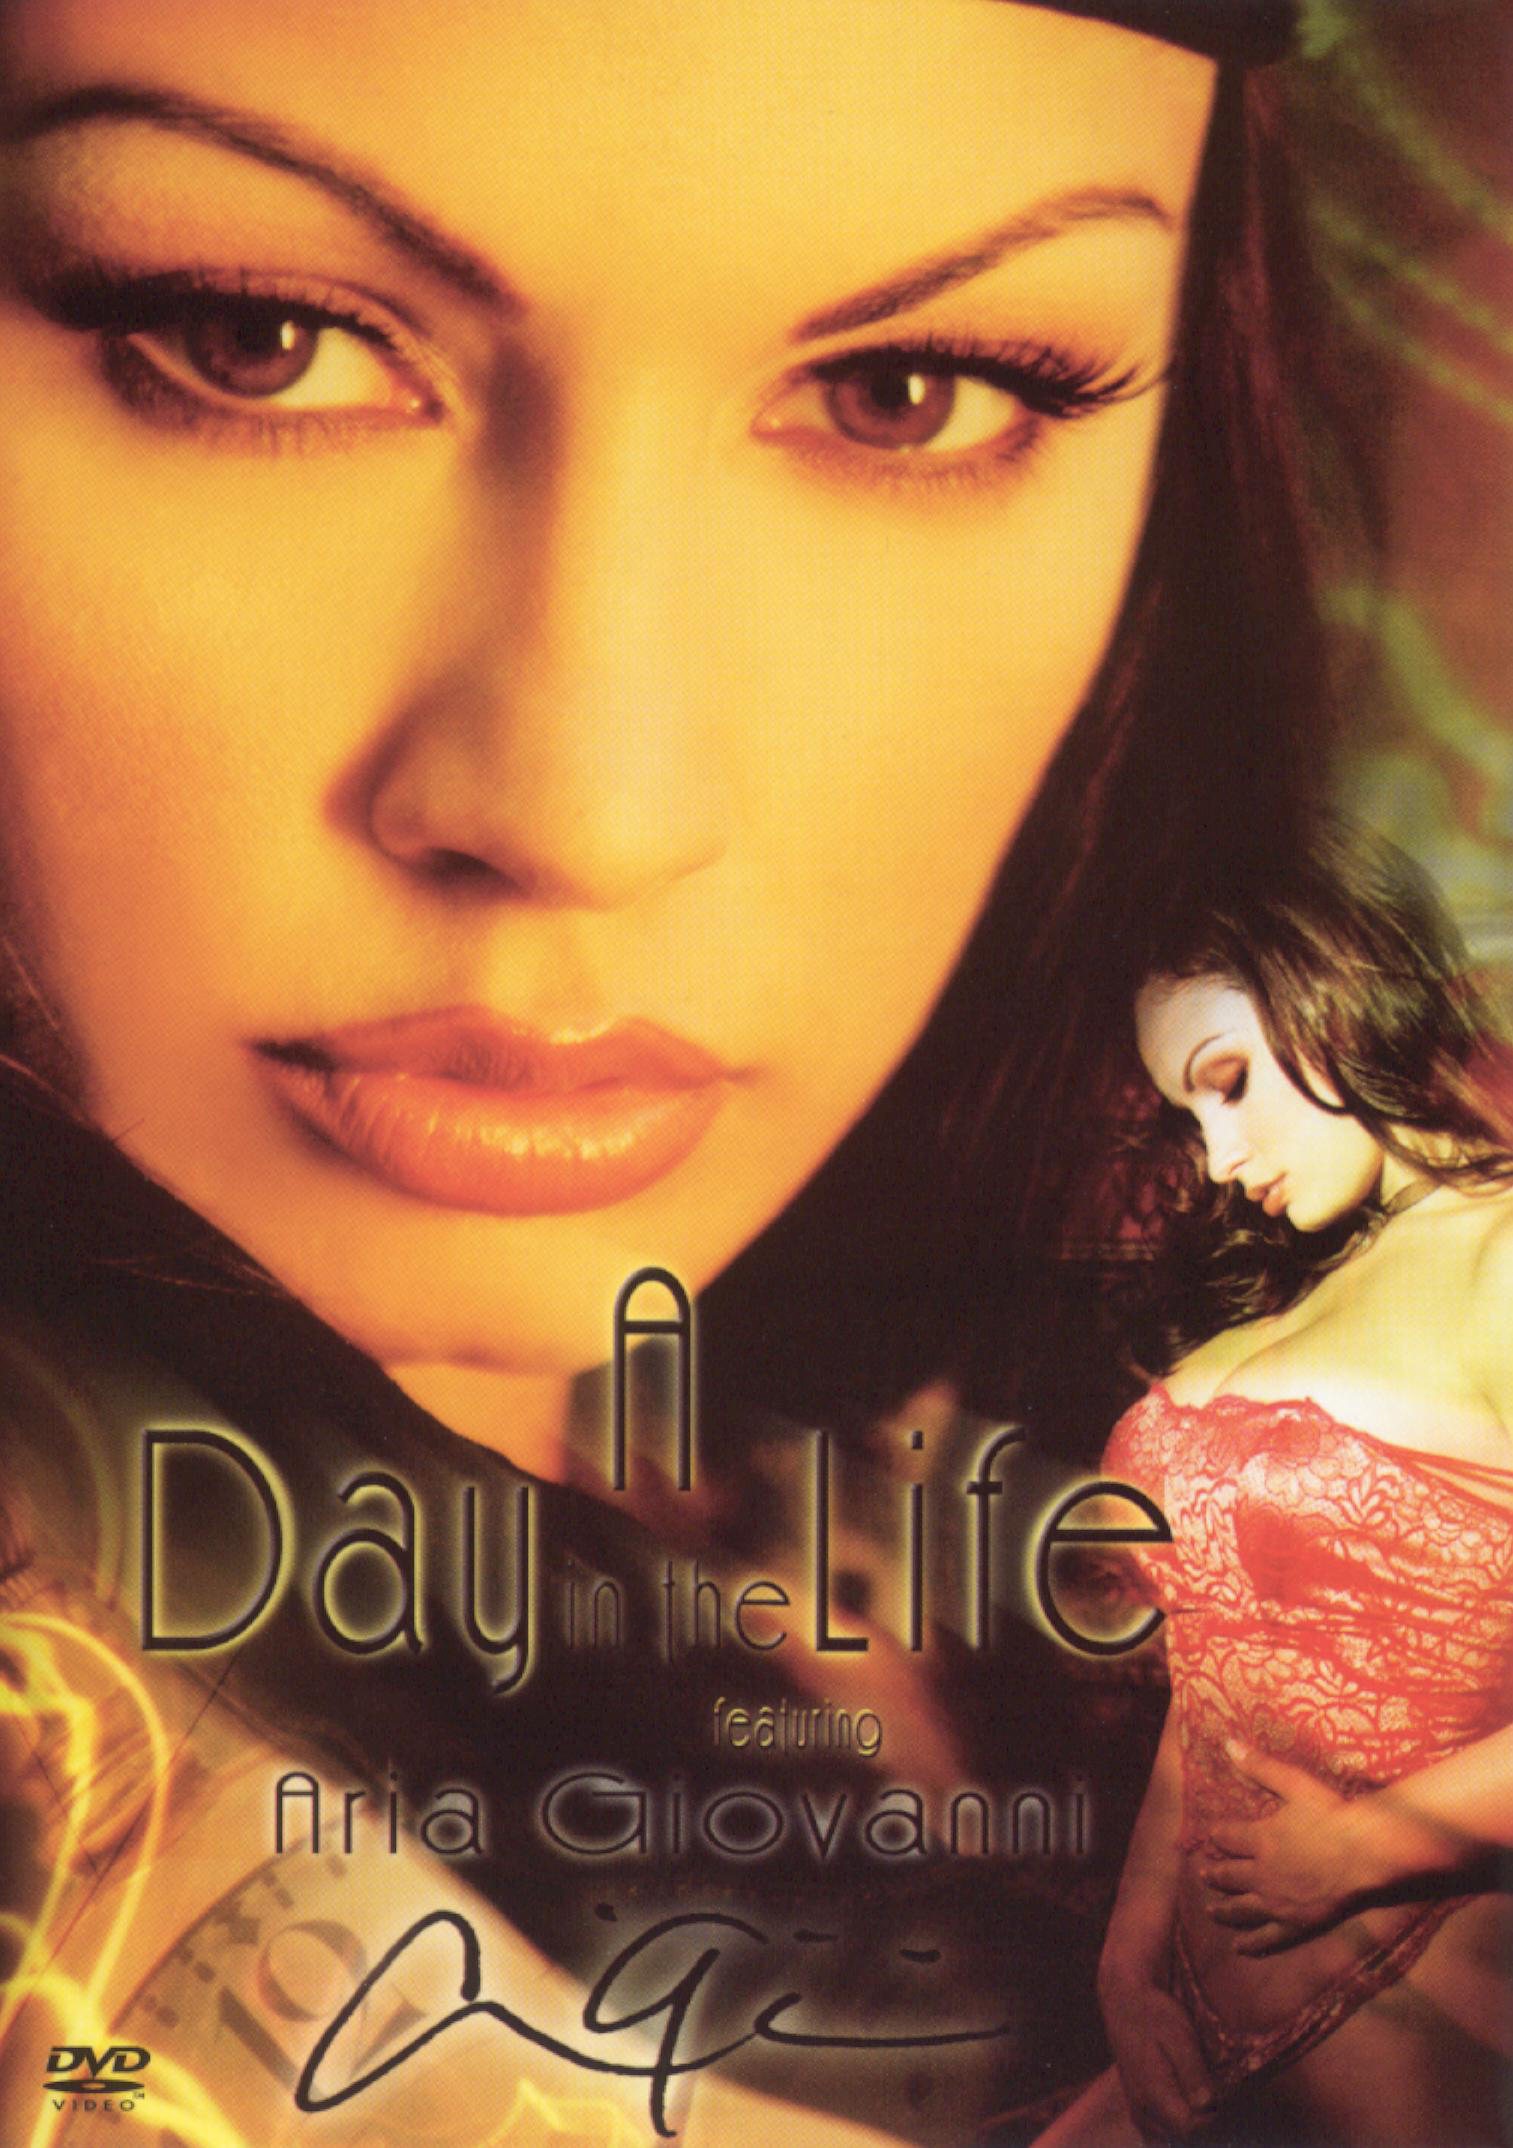 Mystique: A Day in the Life of Aria Giovanni